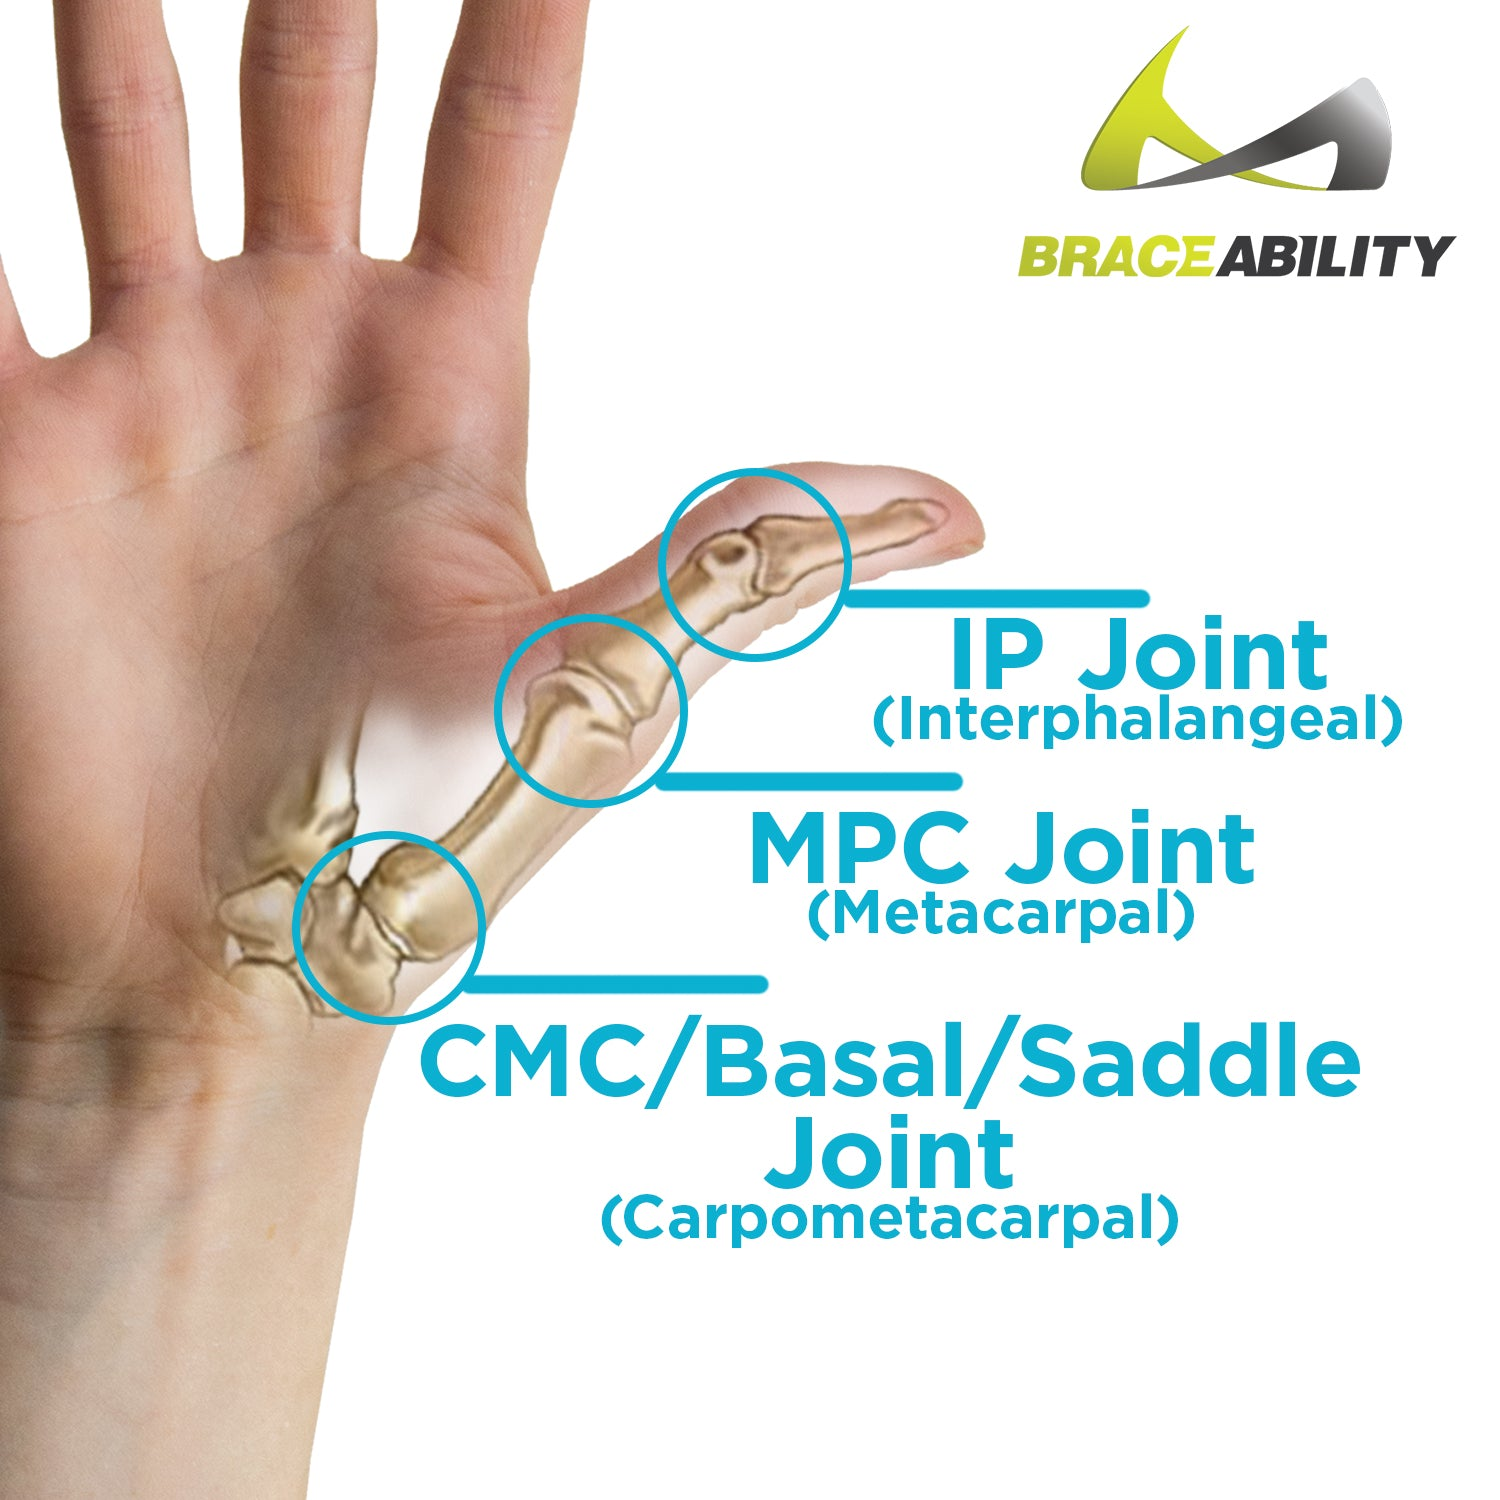 Hard Plastic Thumb Brace | Arthritis Splint & Basal Joint Immobilizer